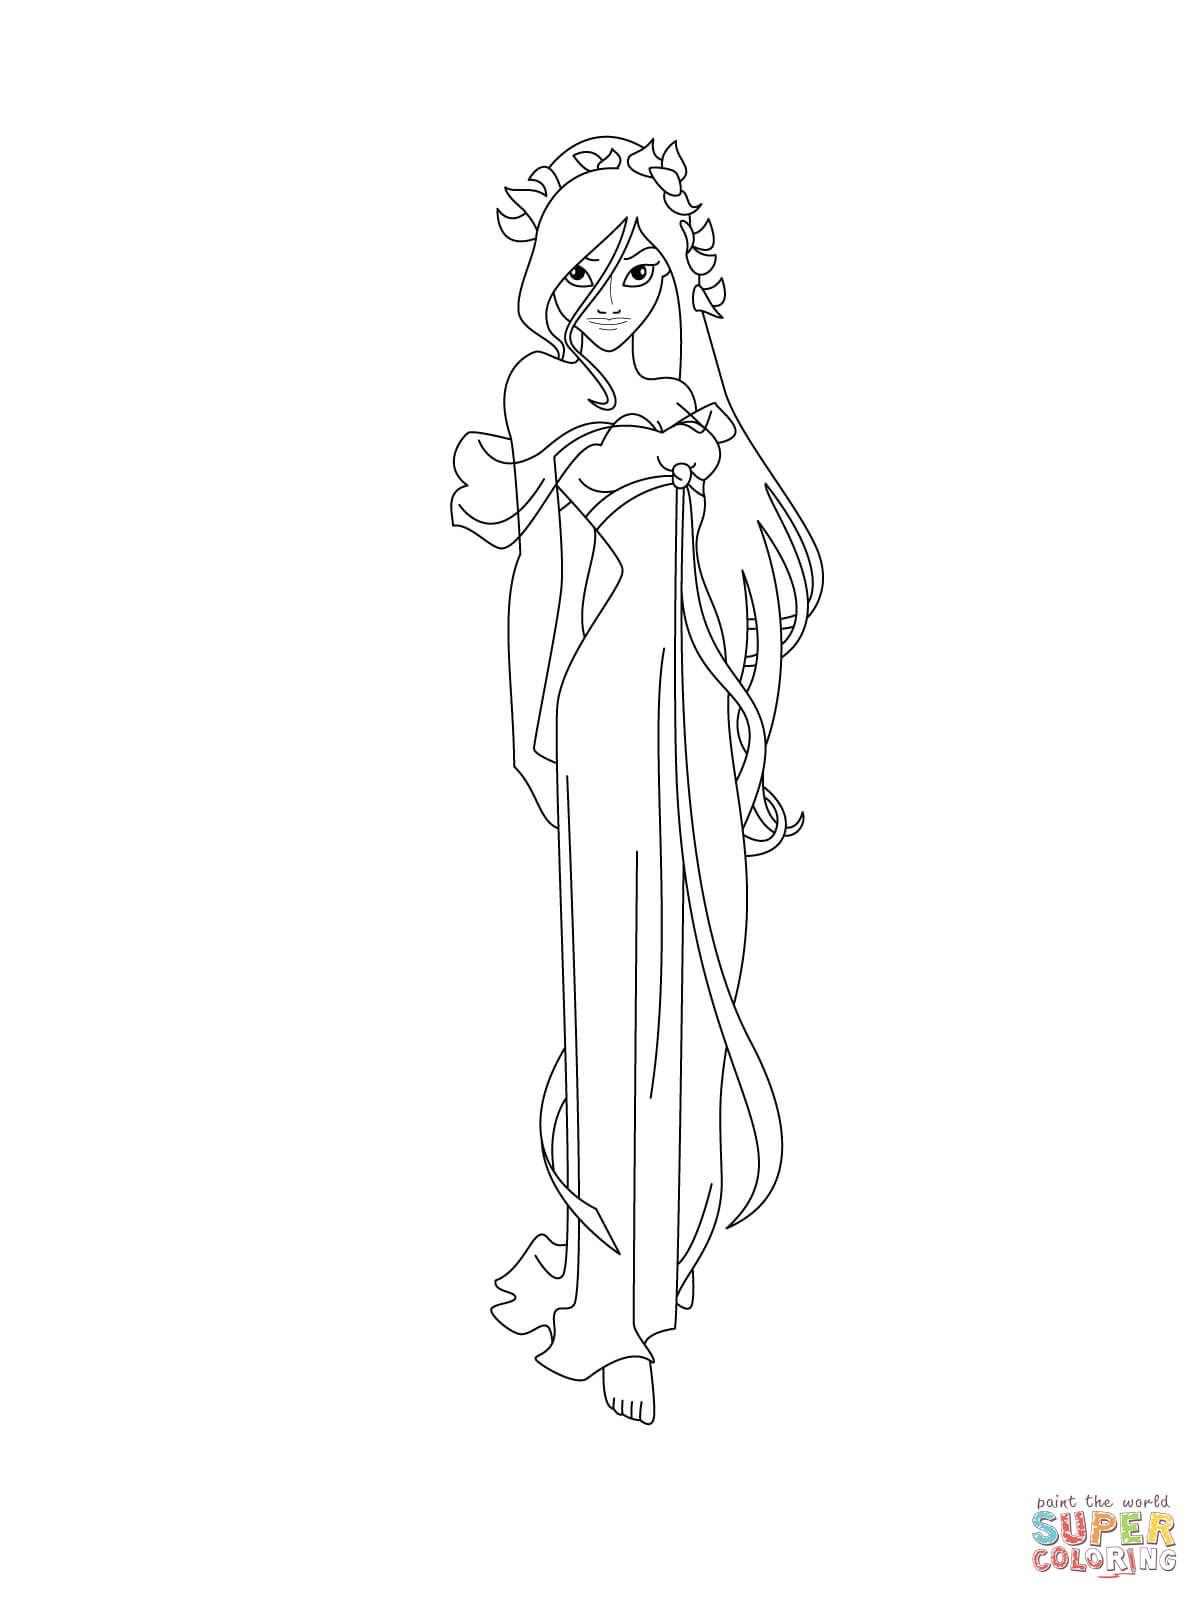 Princess giselle coloring pages - Giselle Coloring Page Free Printable Coloring Pages